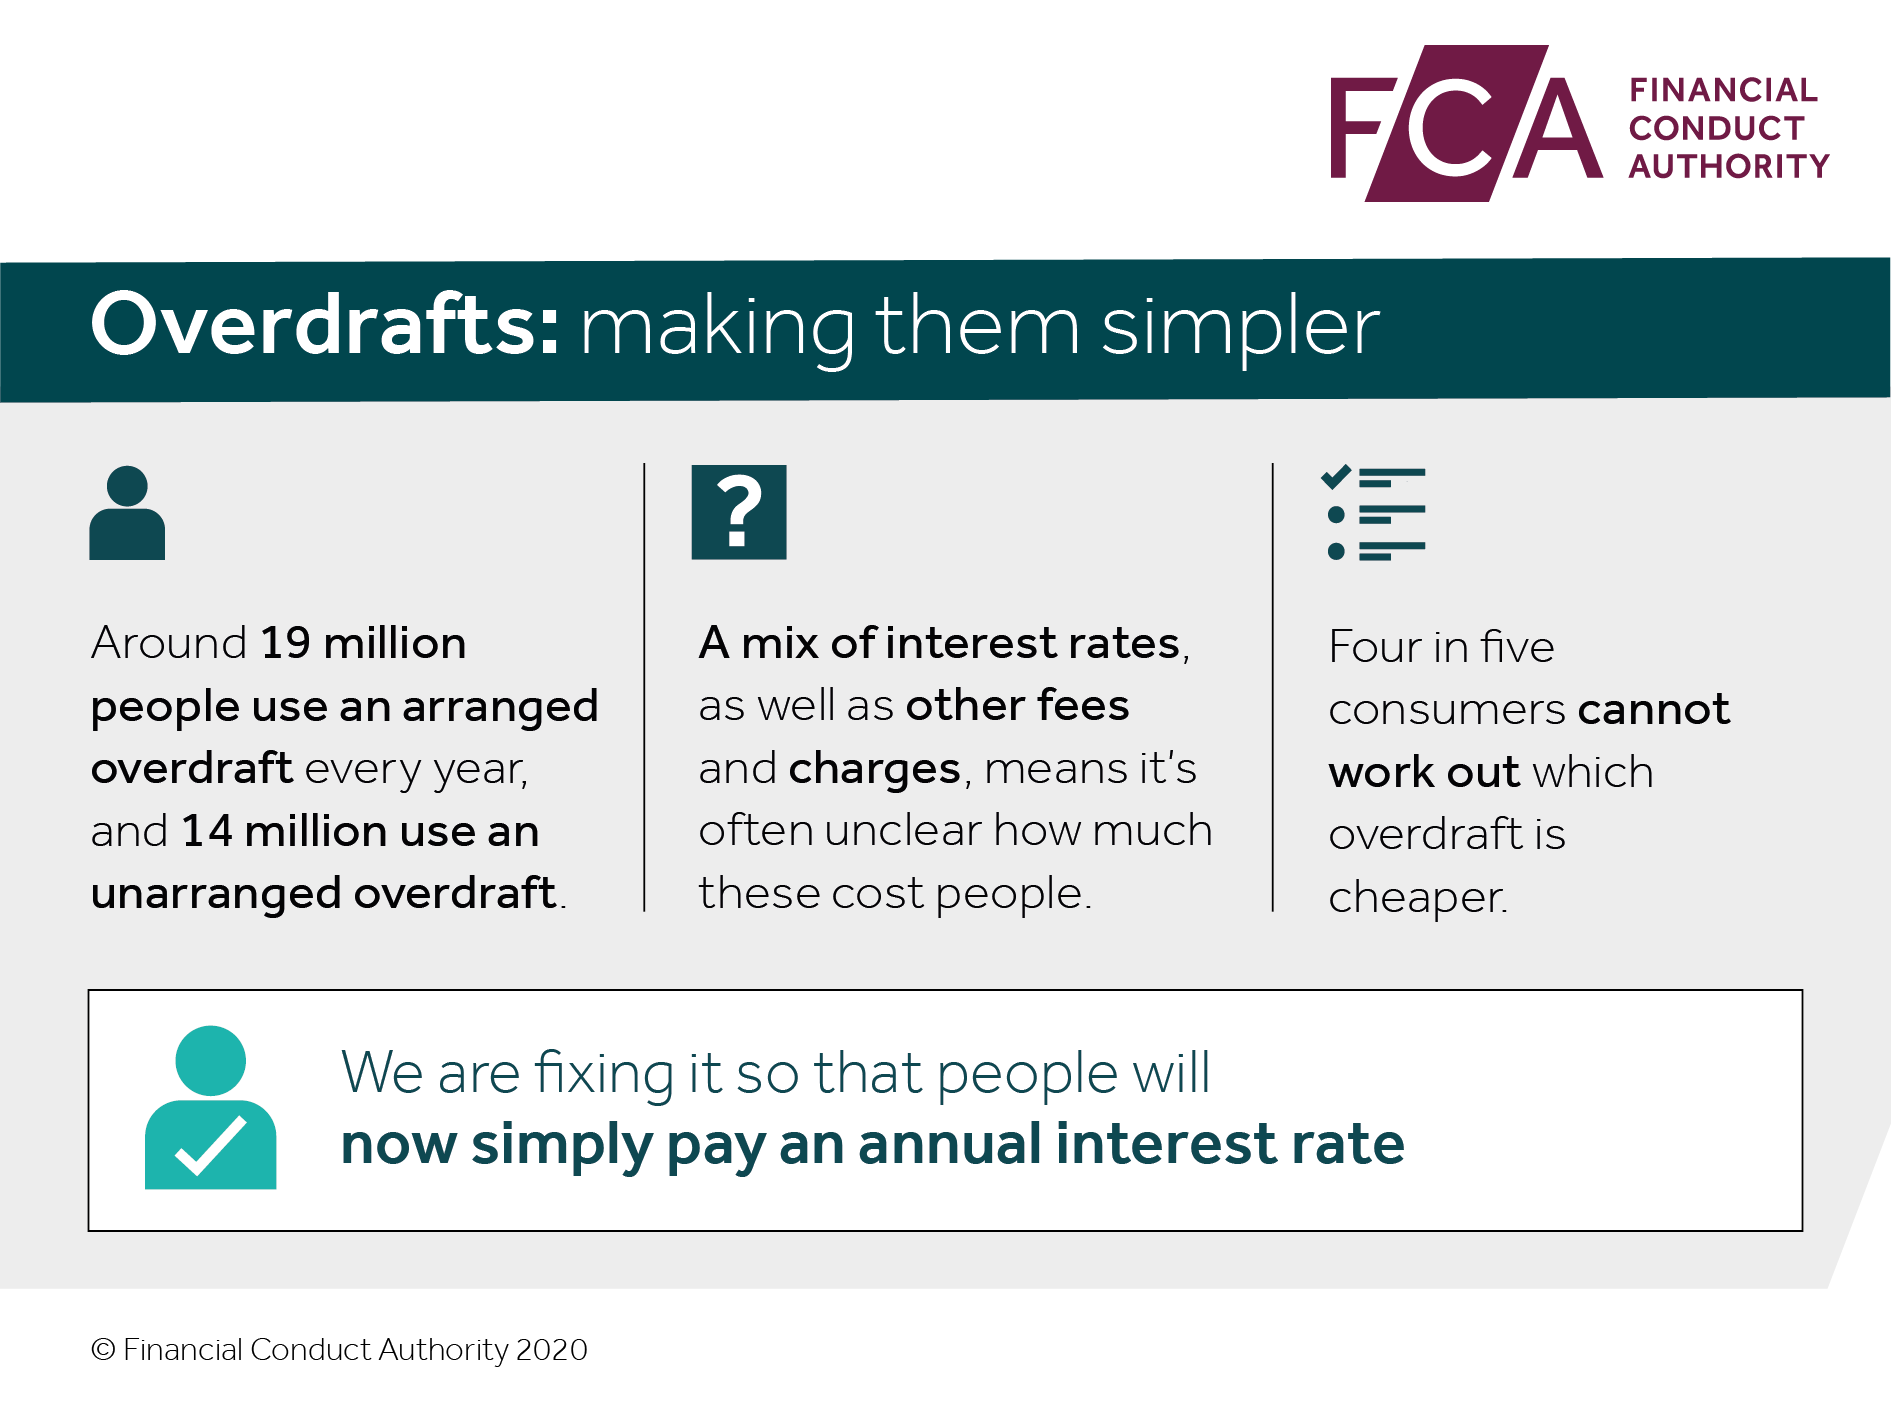 We are fixing it so that people will now simply pay an annual interest rate.